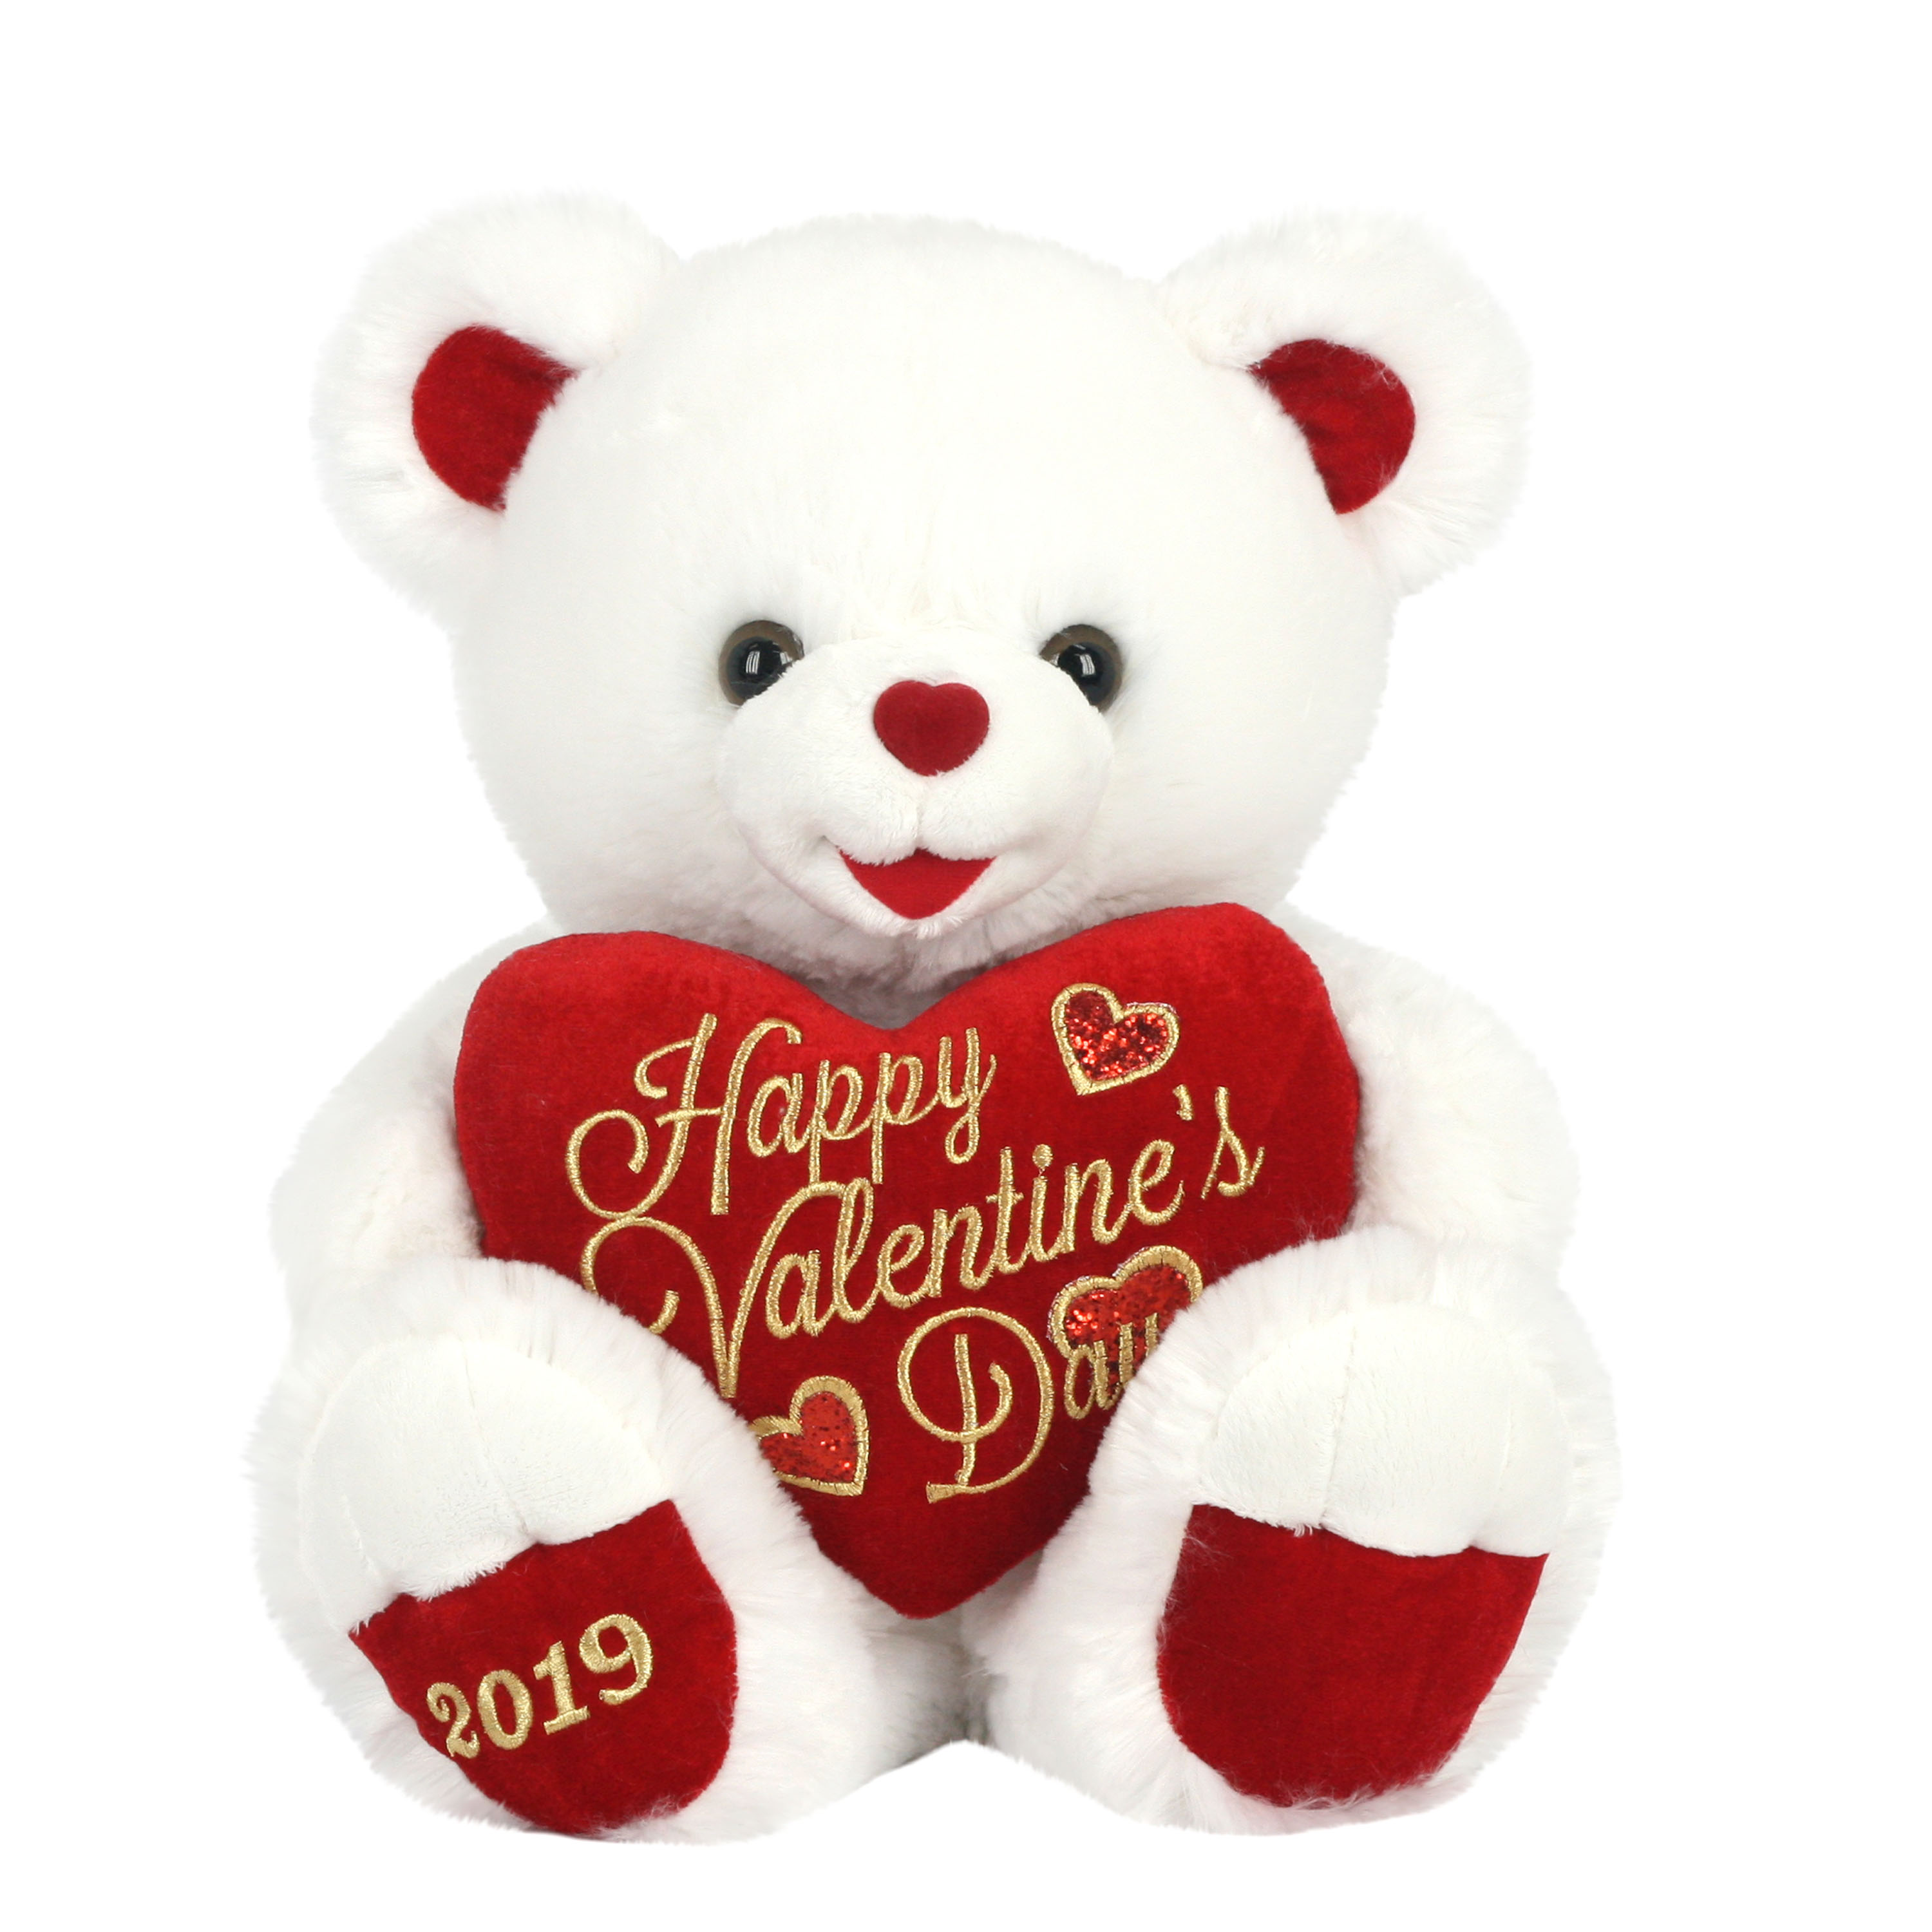 "Way To Celebrate 20"" Sweetheart Teddy 2019- White and Red"